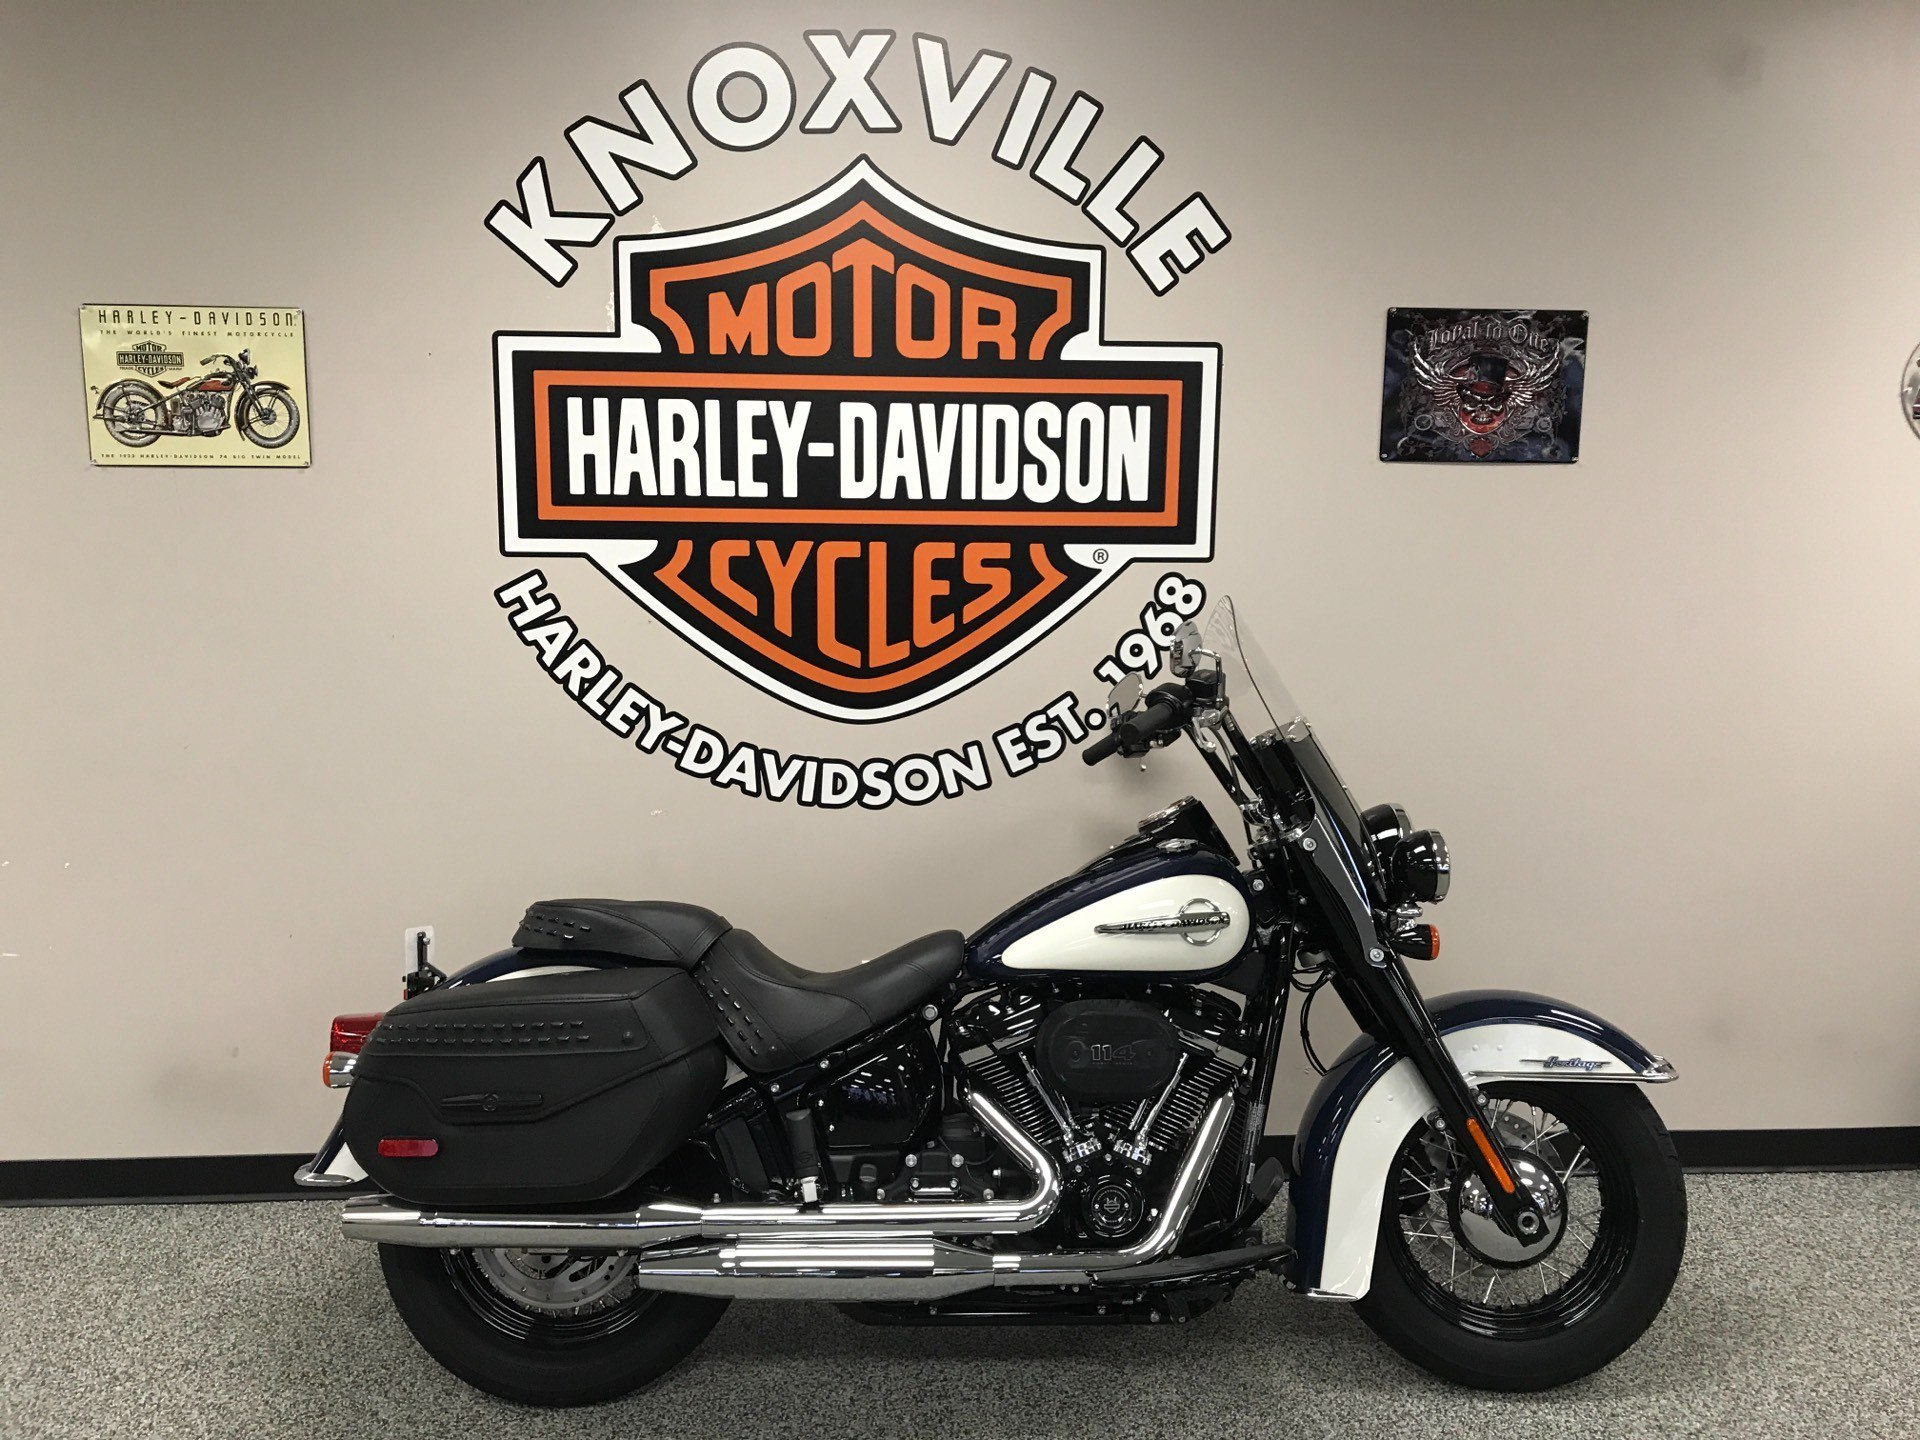 2019 Harley-Davidson Heritage Classic 114 in Knoxville, Tennessee - Photo 1